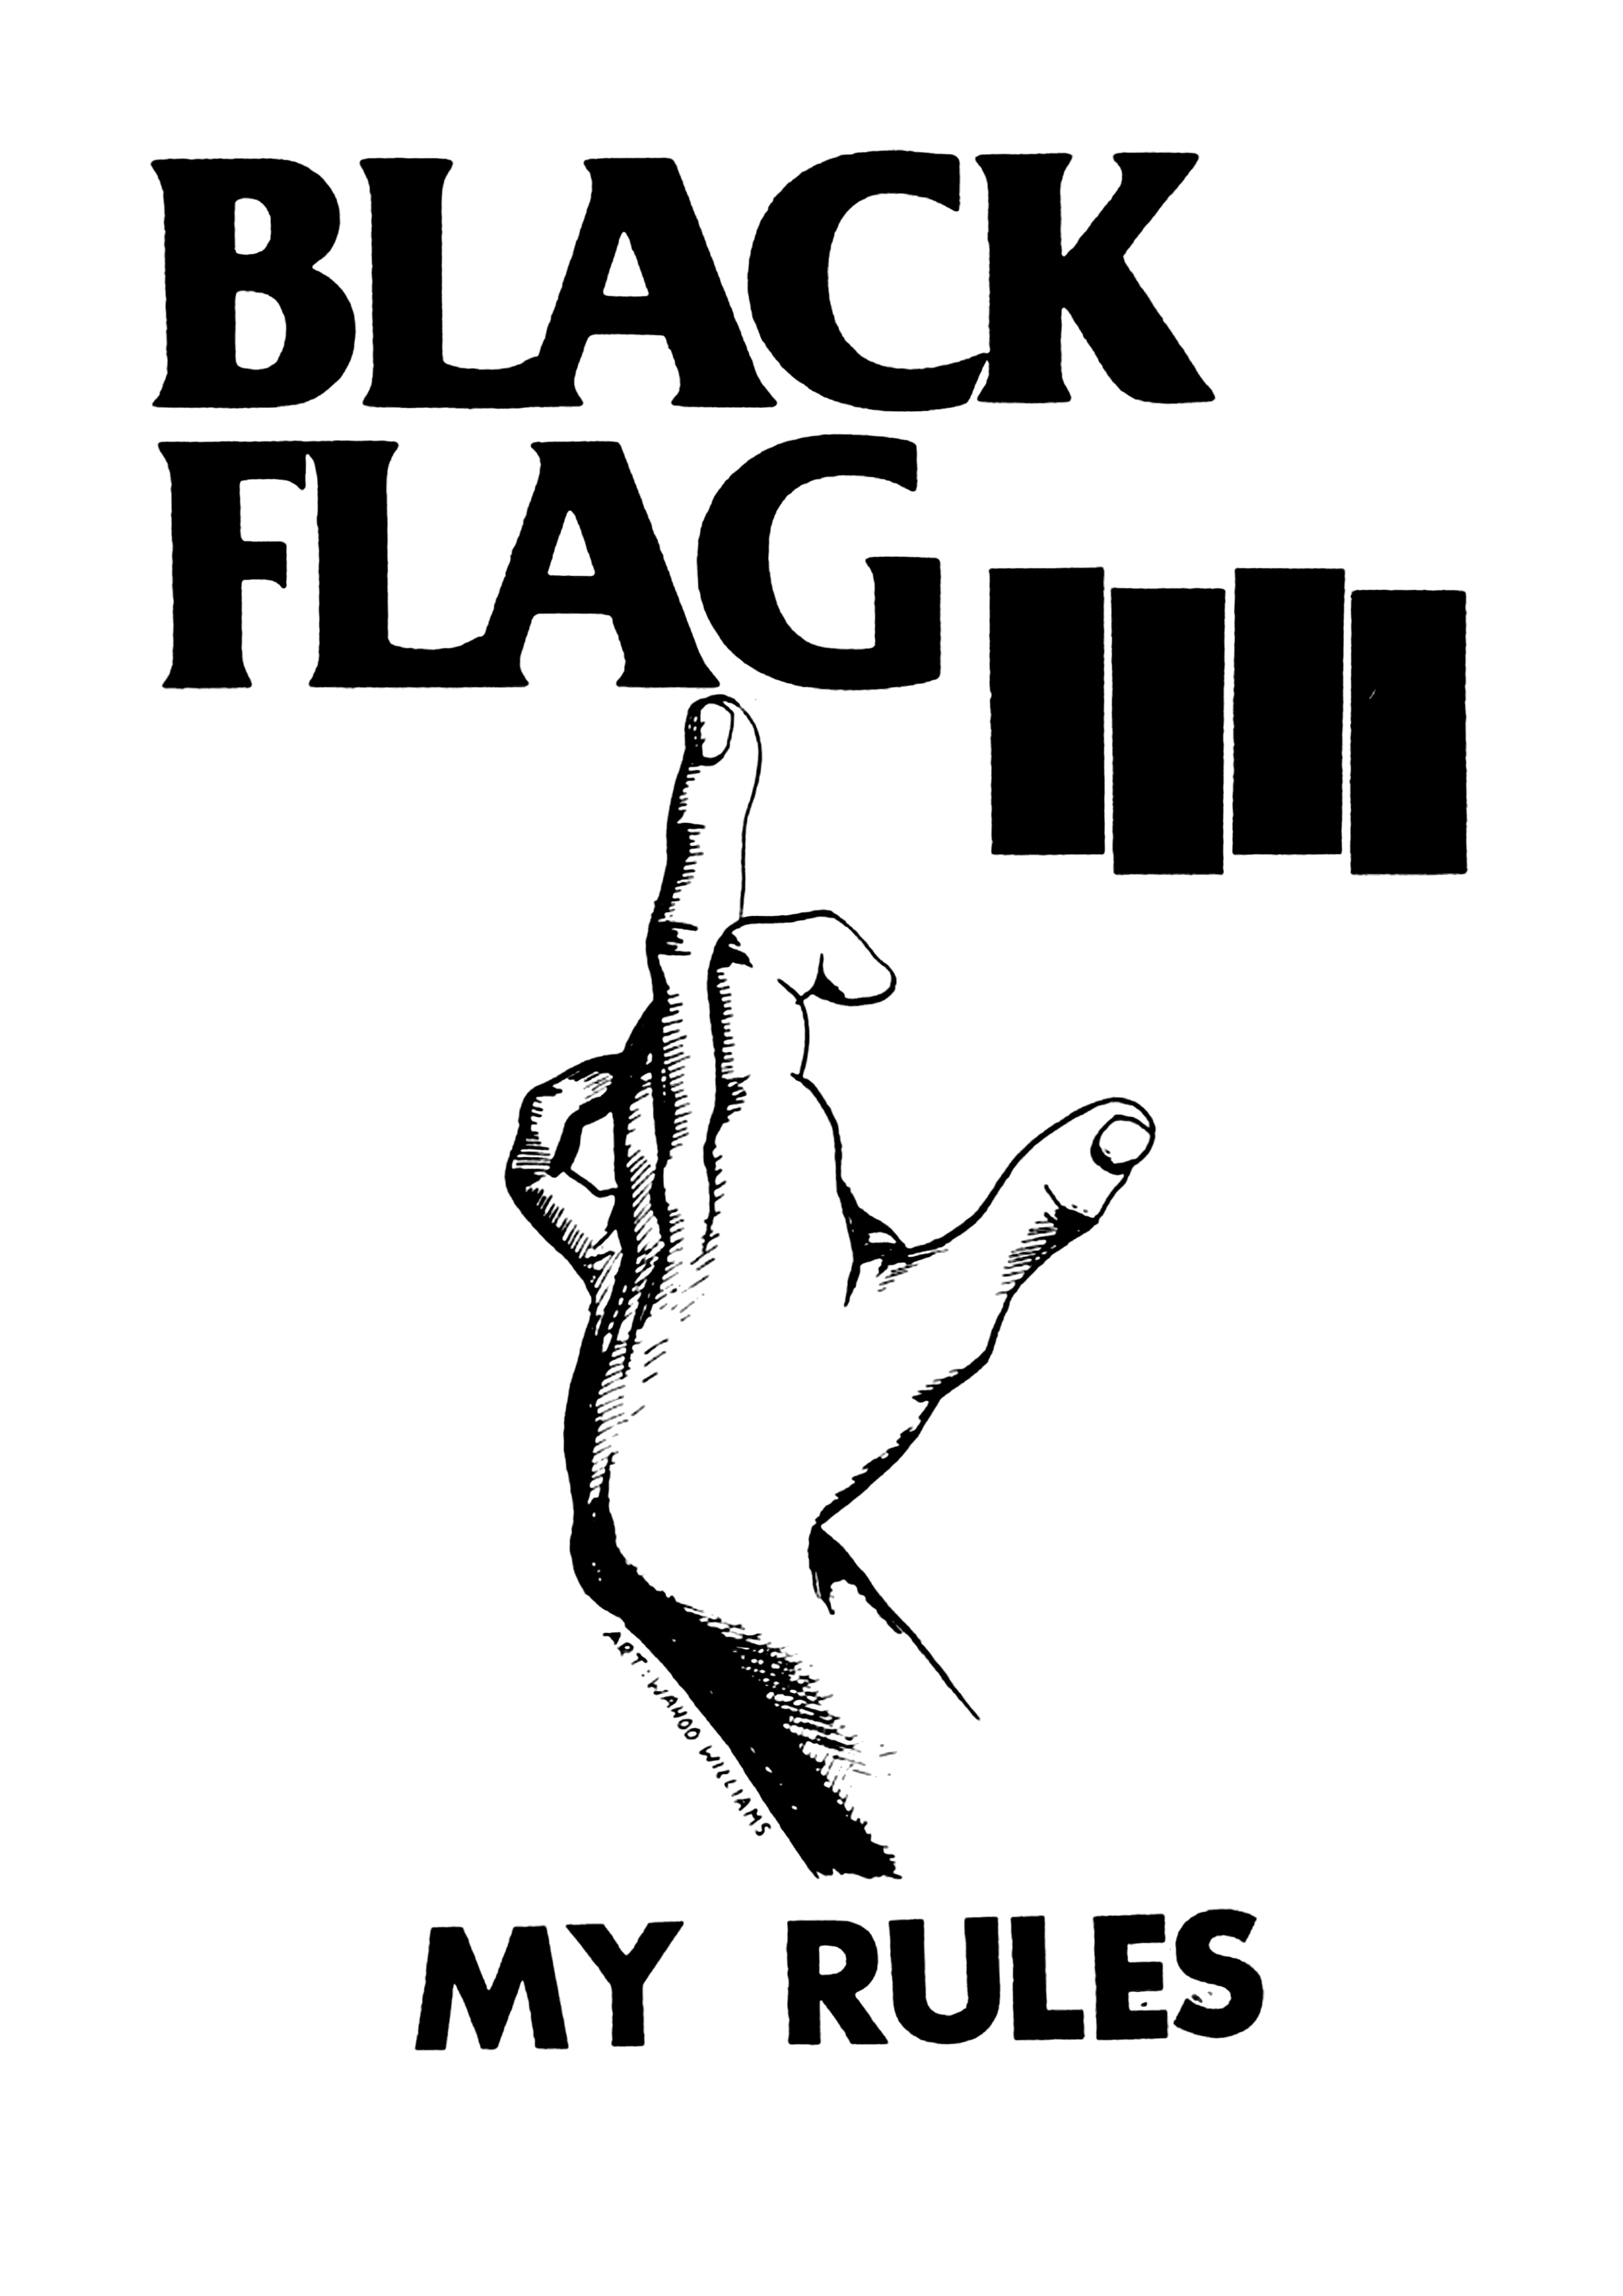 Hd Black Flag Pettibon Posters Punk Poster Rock Band Posters Band Posters